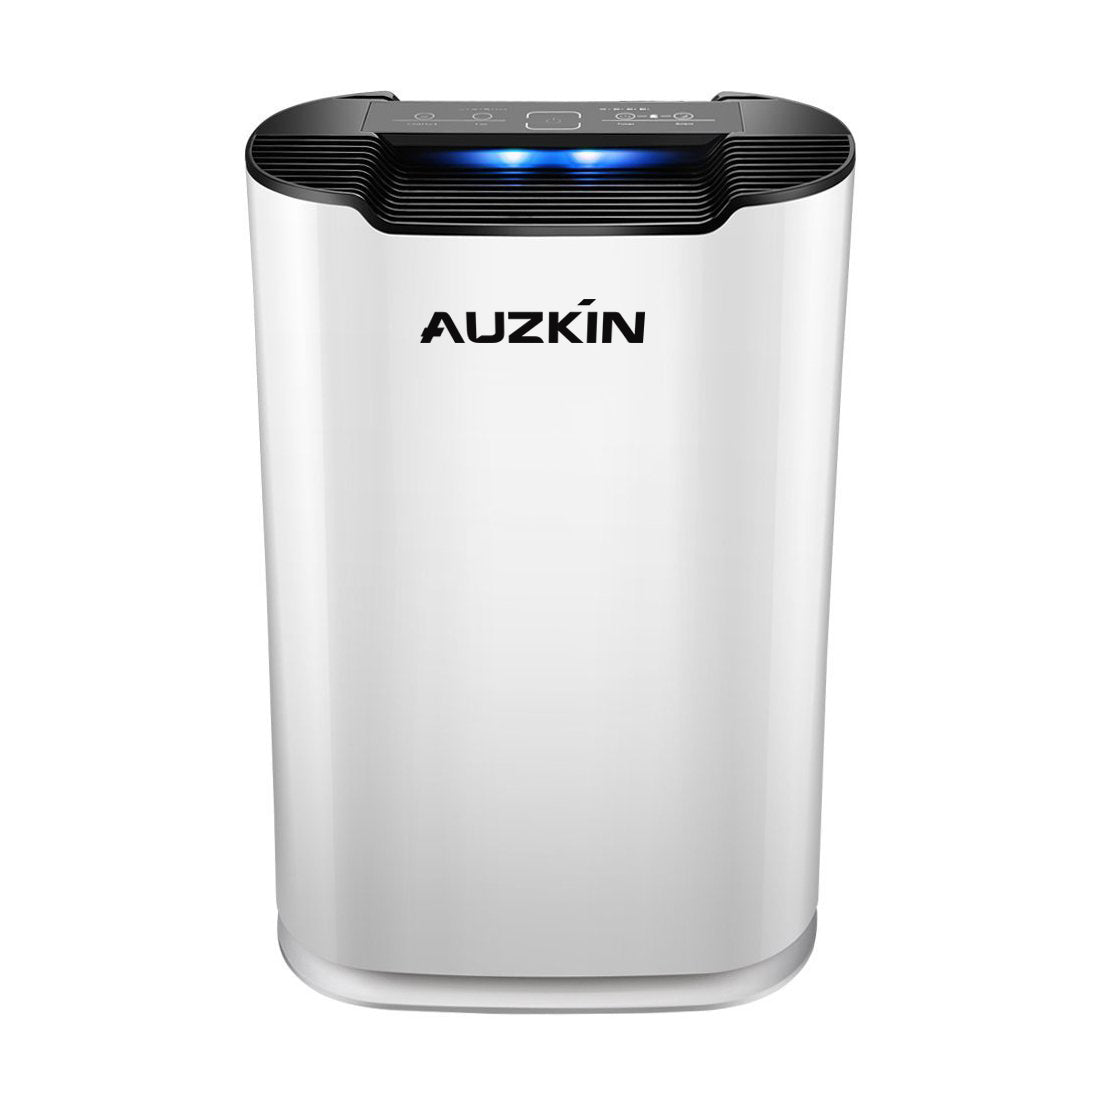 AUZKIN Air purifiers True HEPA Air Purifier - 3 Speeds Plus UV-C Air Sanitizer - Eliminates Dust, Pollen, Smoke, Household Odors and More - with Whisper-Quiet Operation and Auto Off Timer